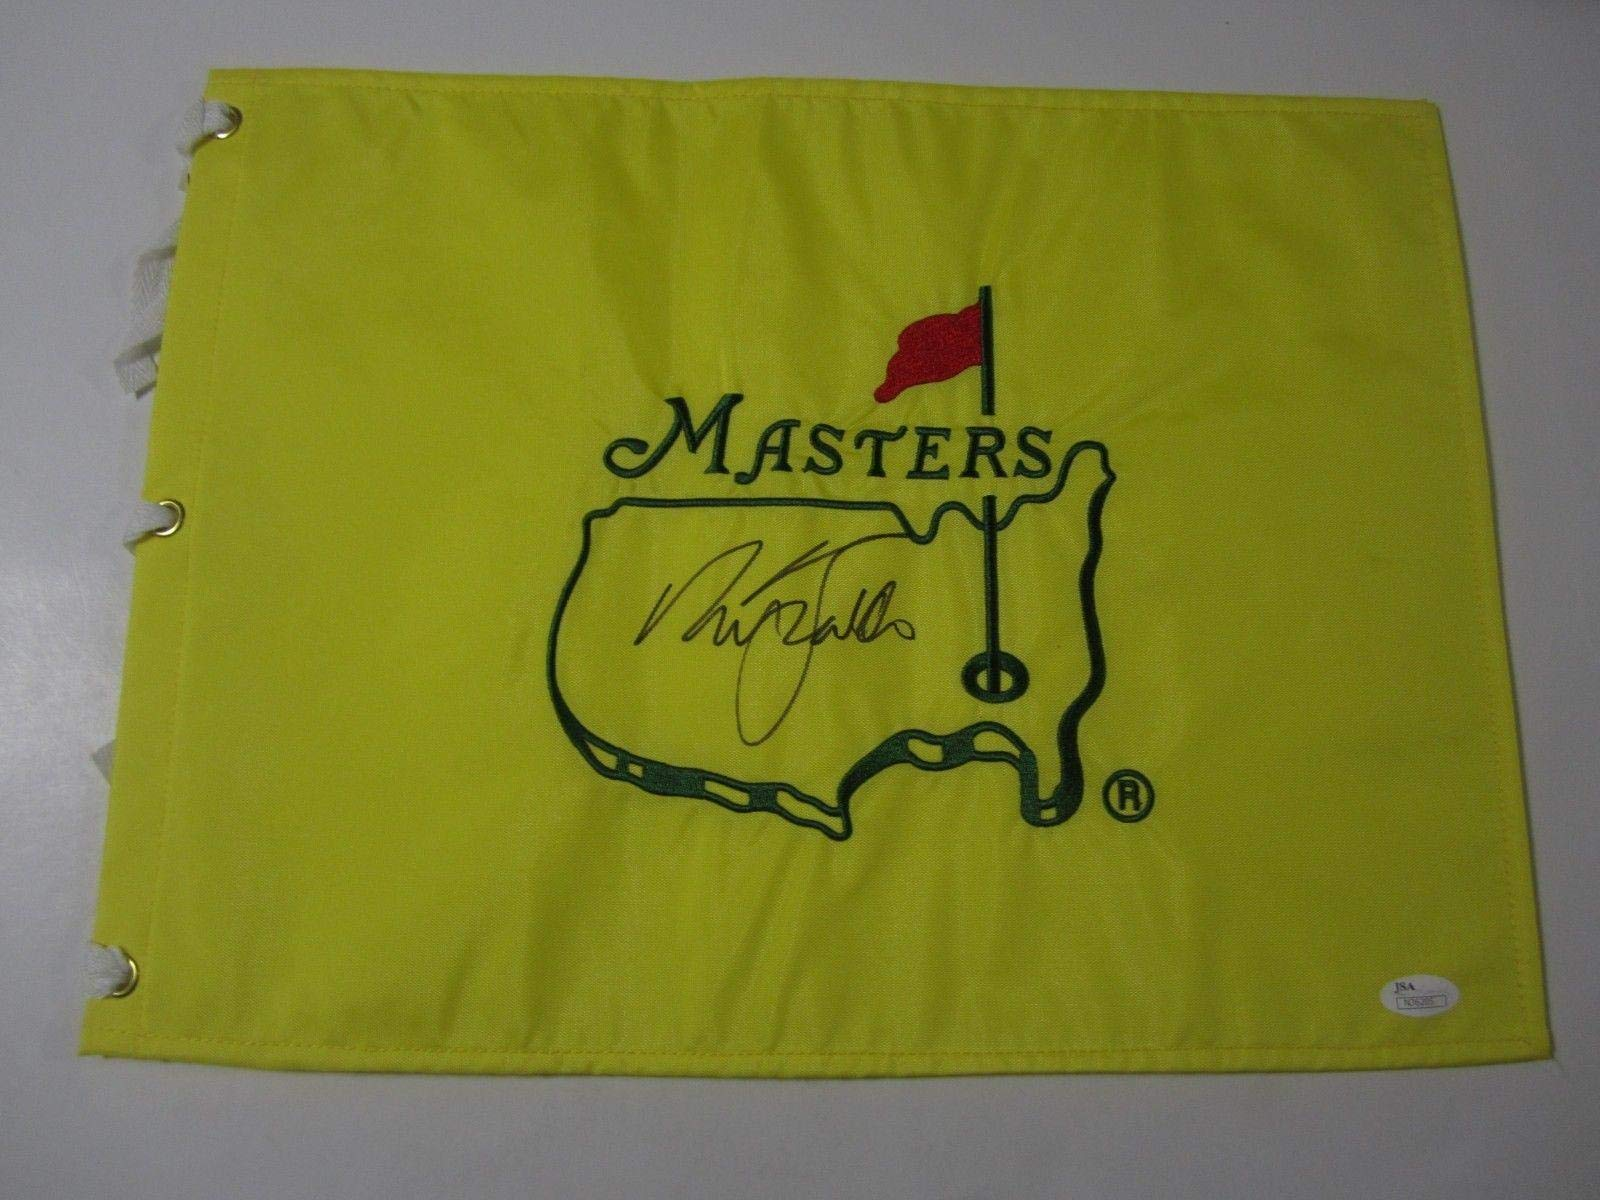 Nick Faldo Signed autographed Yellow Undated Master Flag WINNER RARE COA JSA Certified Autographed Pin Flags